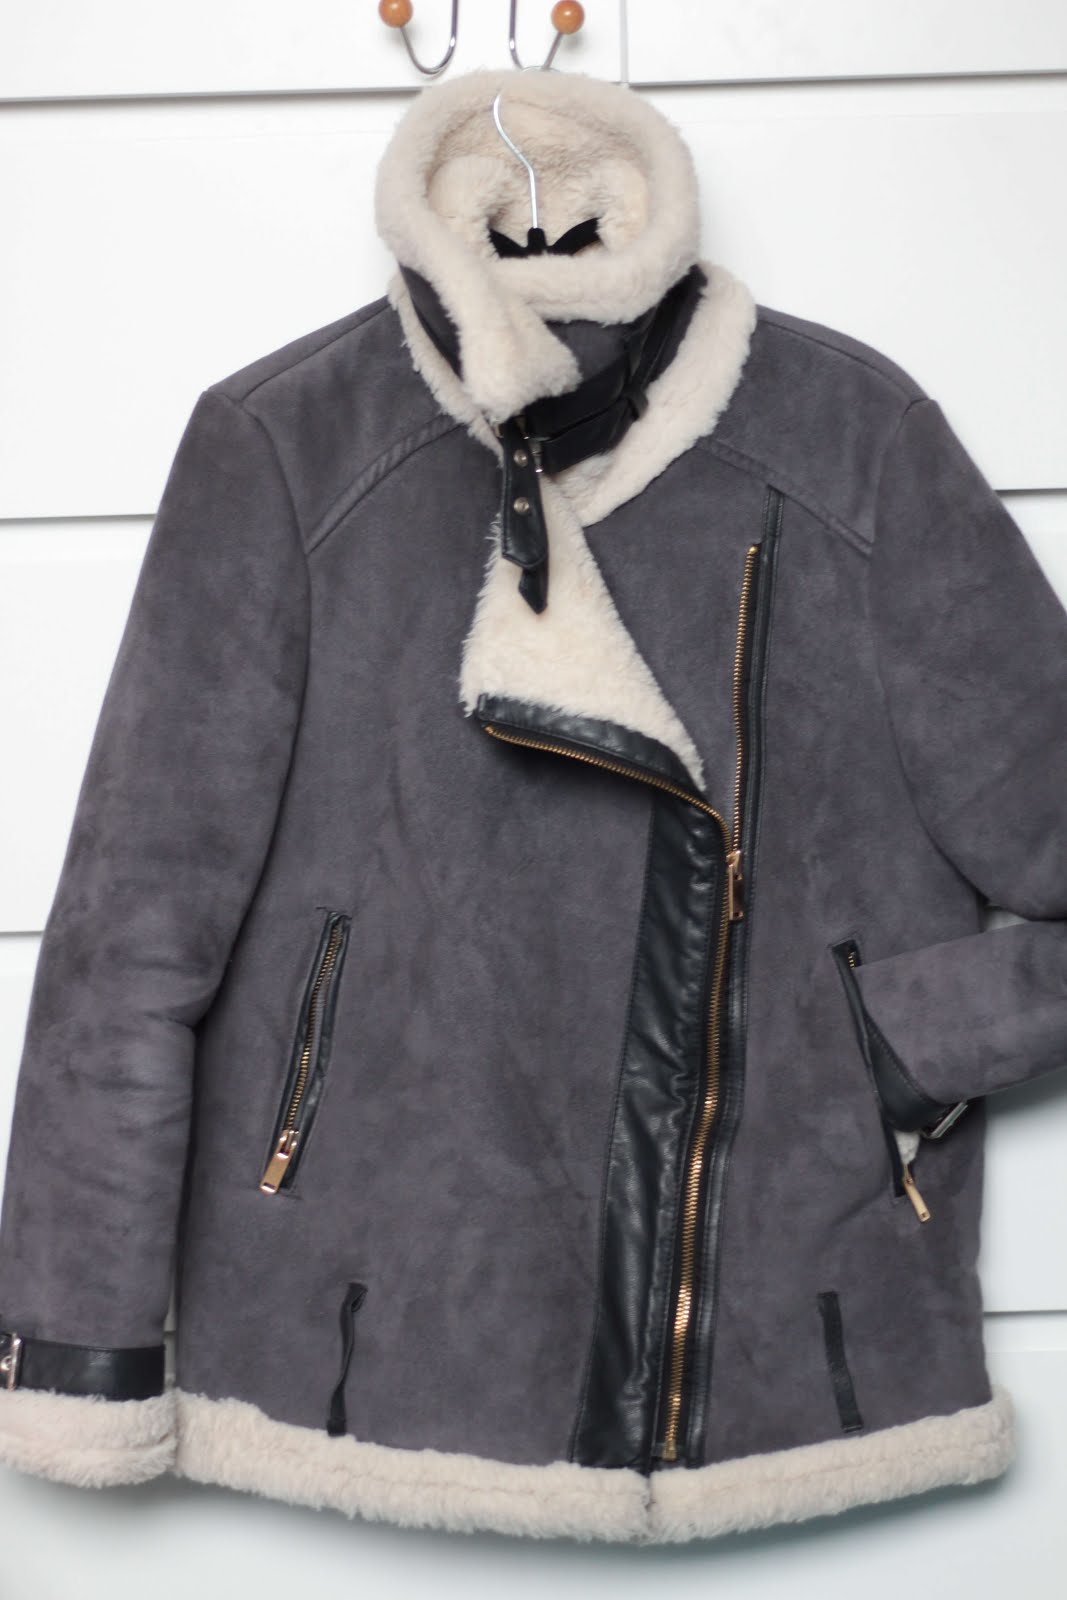 favourite winter items aviator jacket